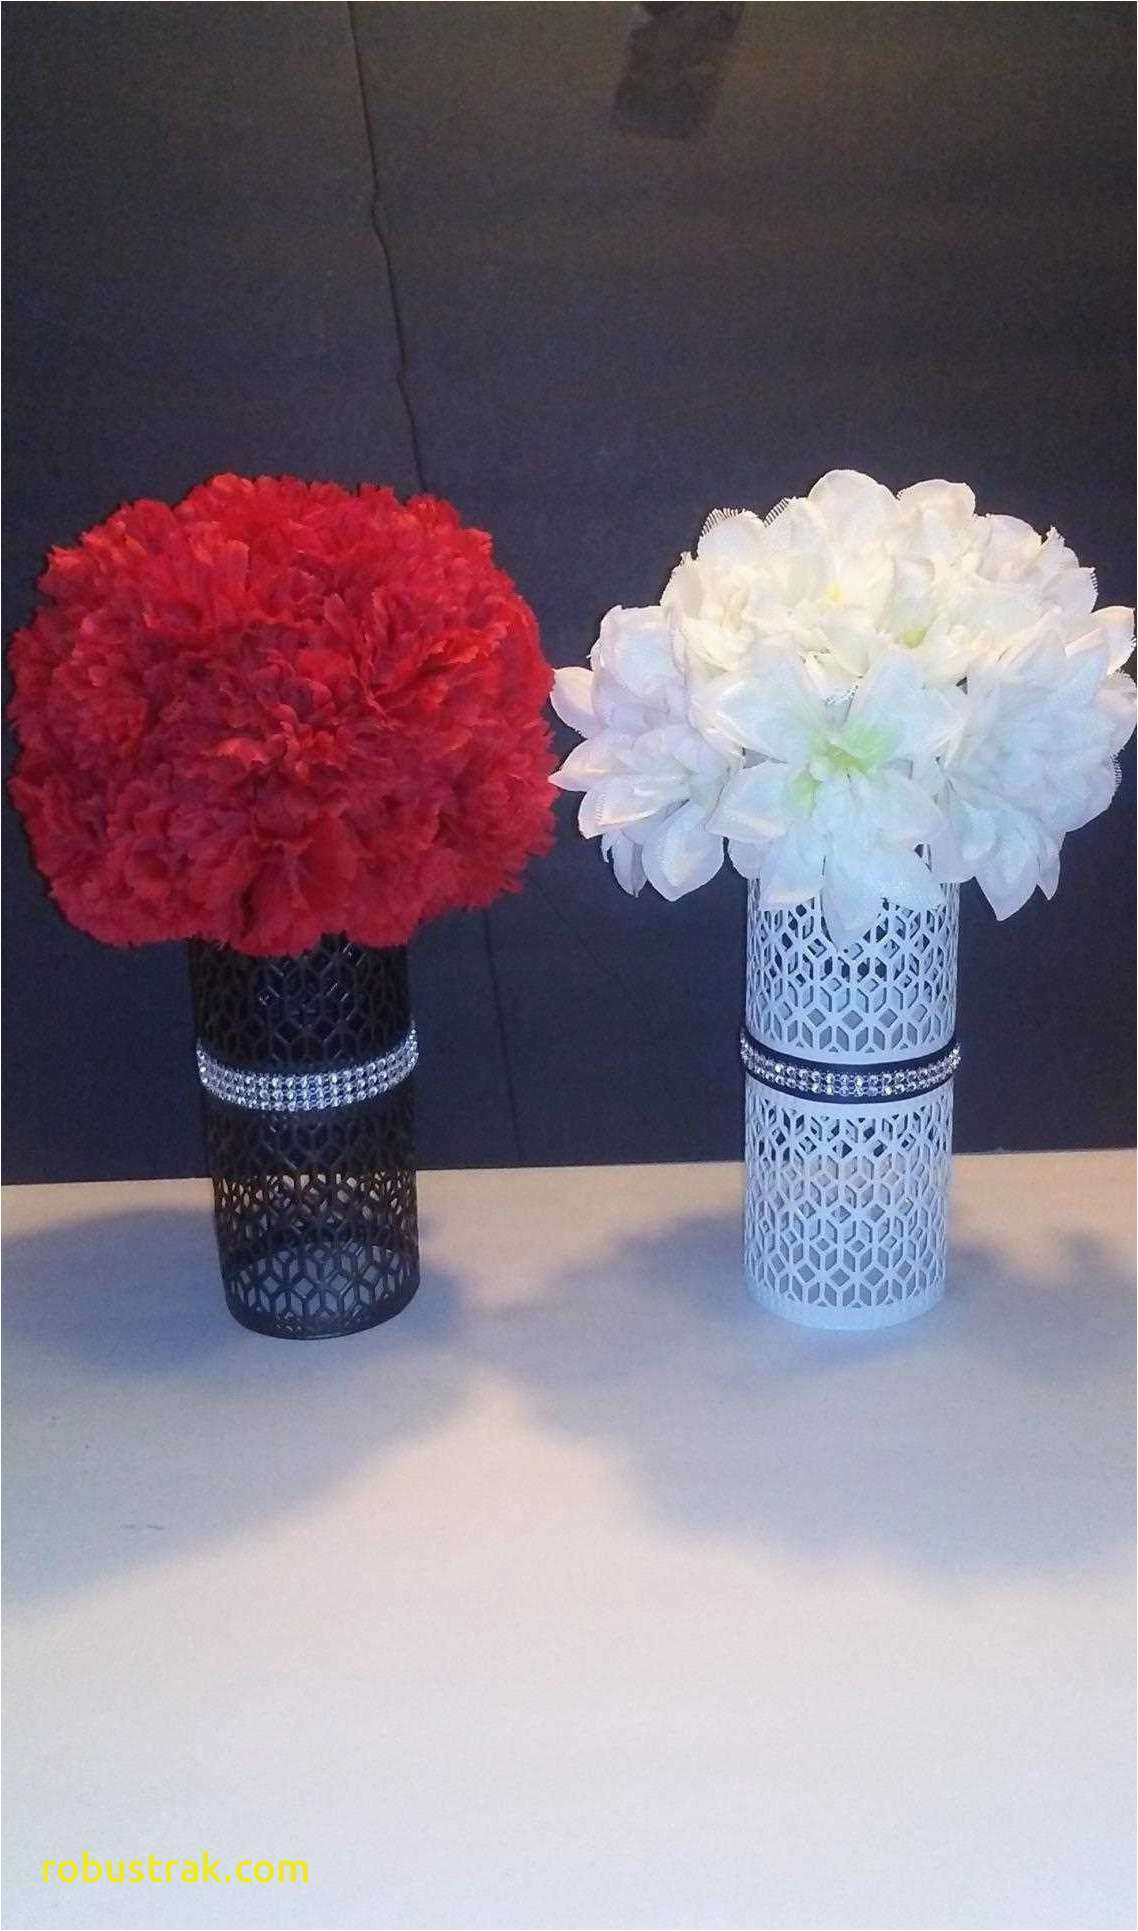 cheap flowers with free vase of 28 marriage office model best certificate examples regarding new dollar tree wedding decorations awesome h vases dollar vase i 0d design wedding silk flower